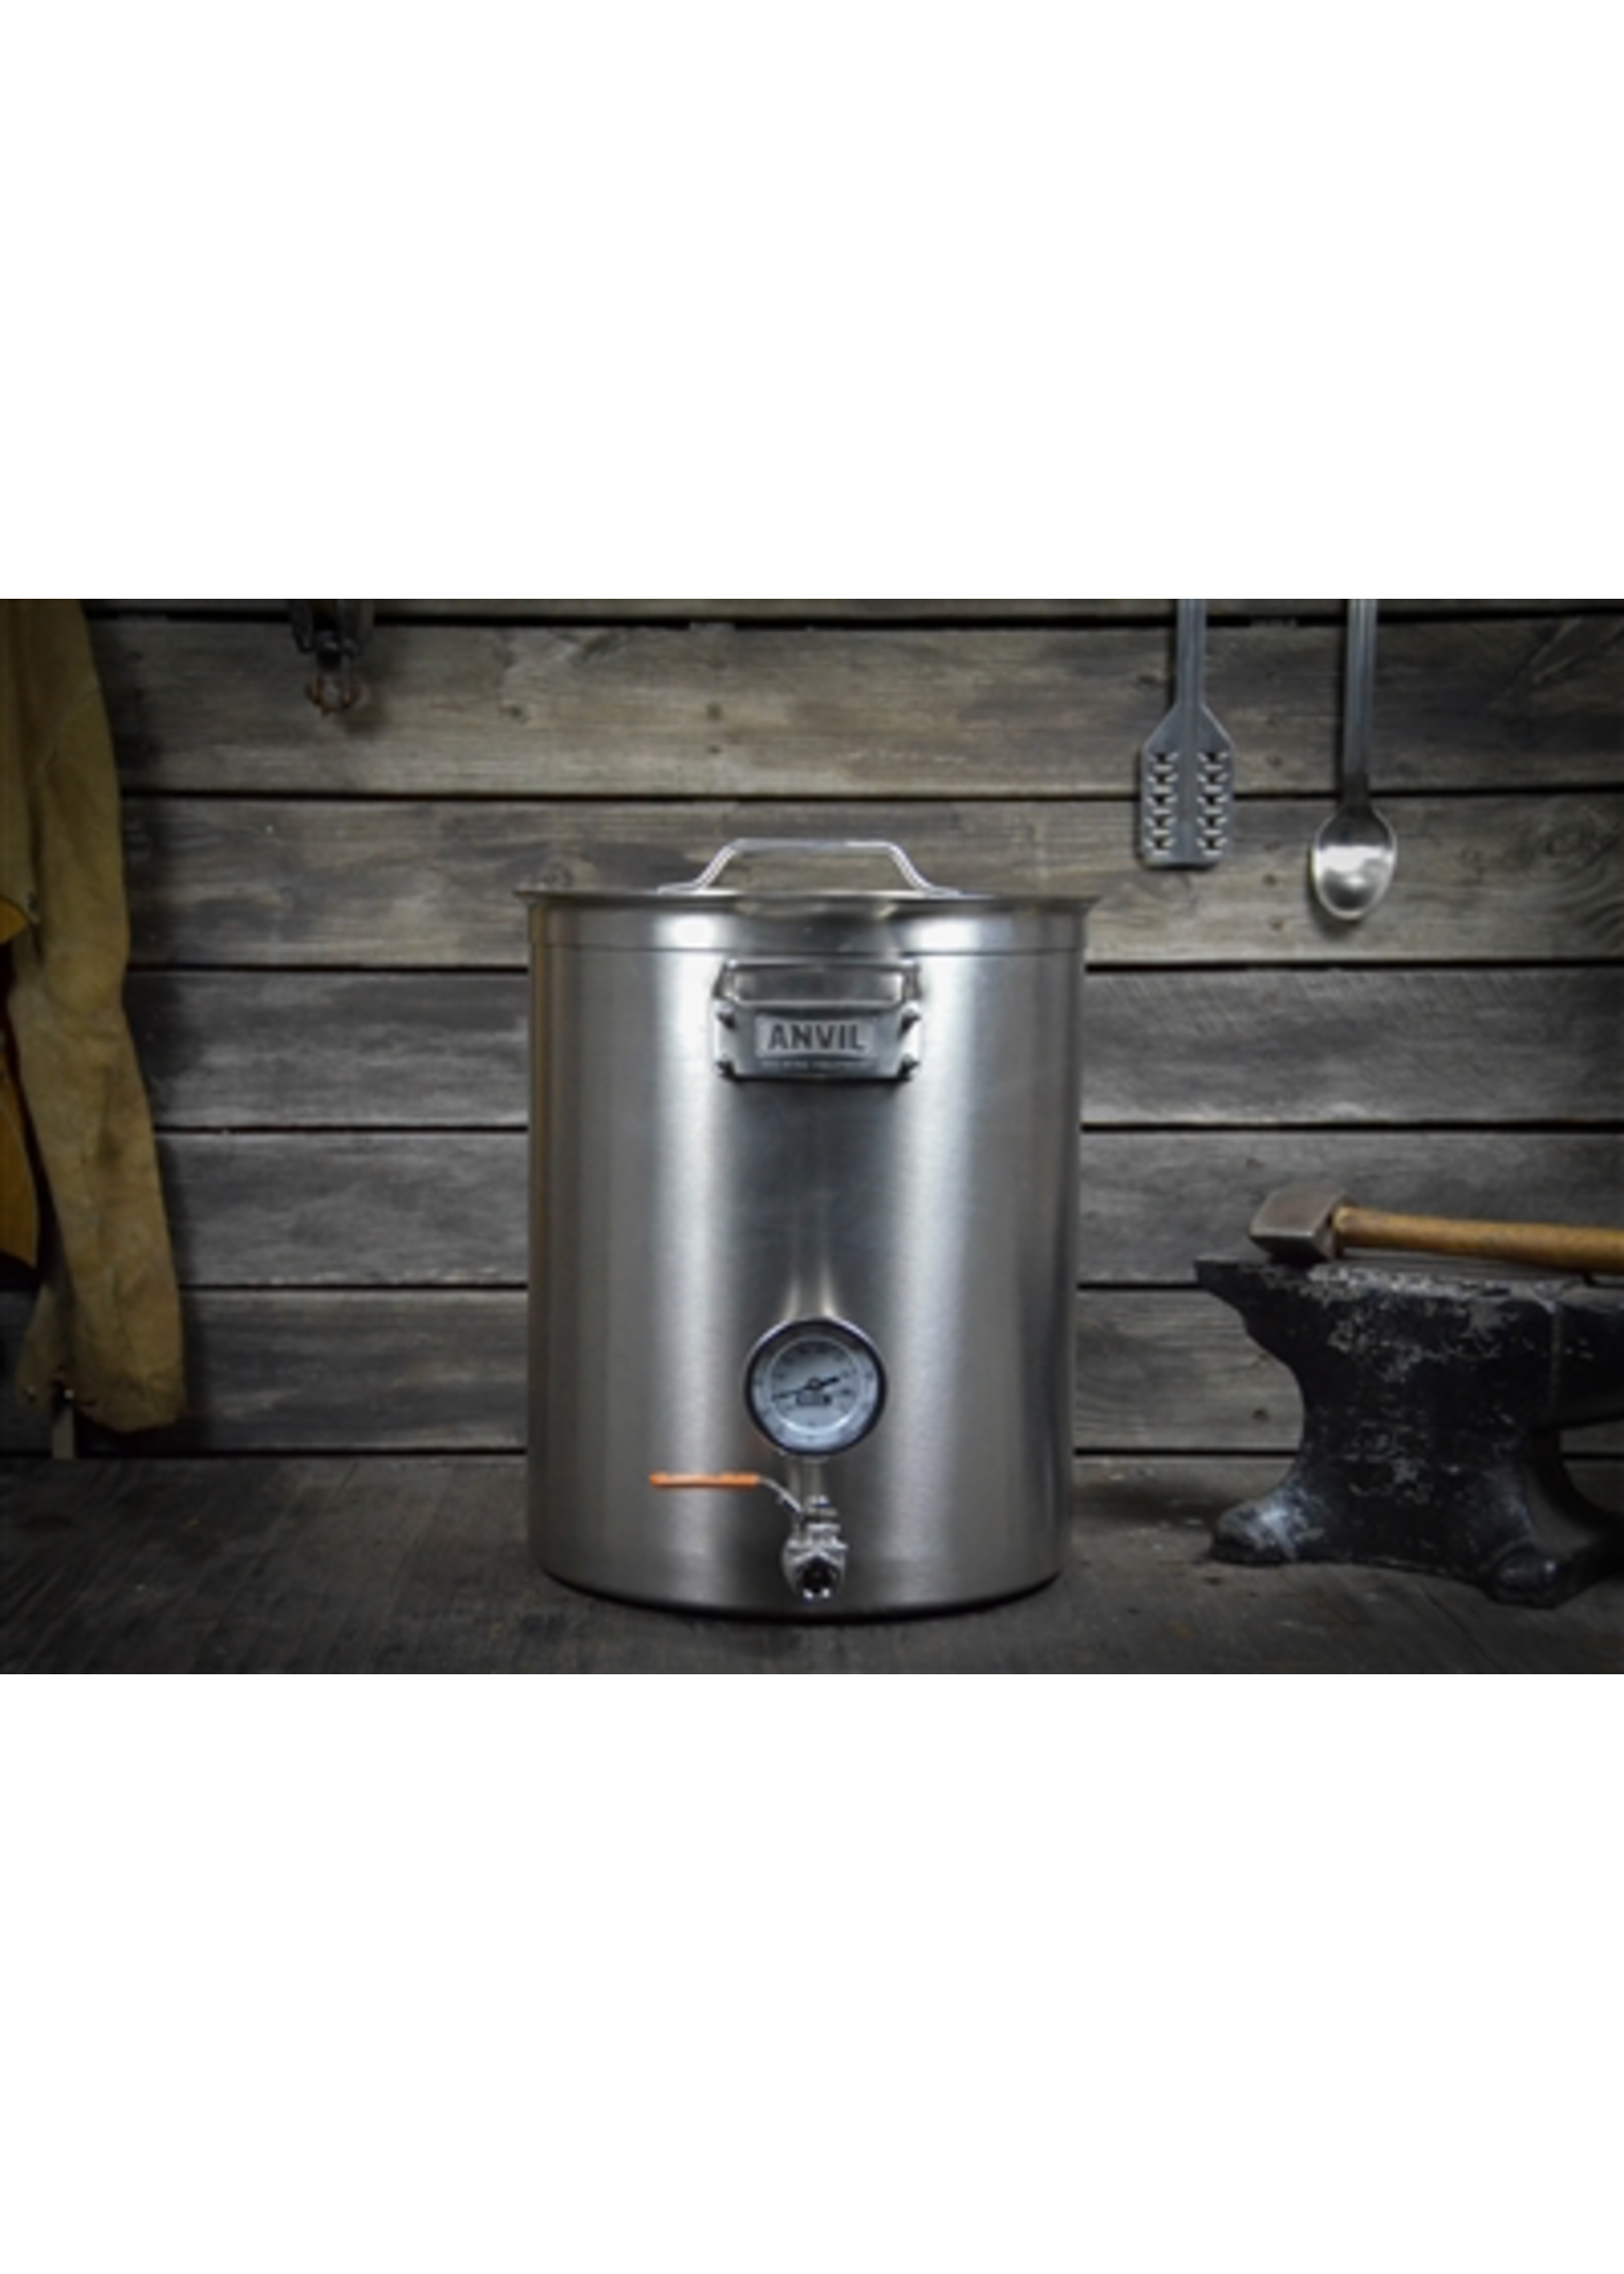 Brewing Anvil Brew Kettle 10 Gallons